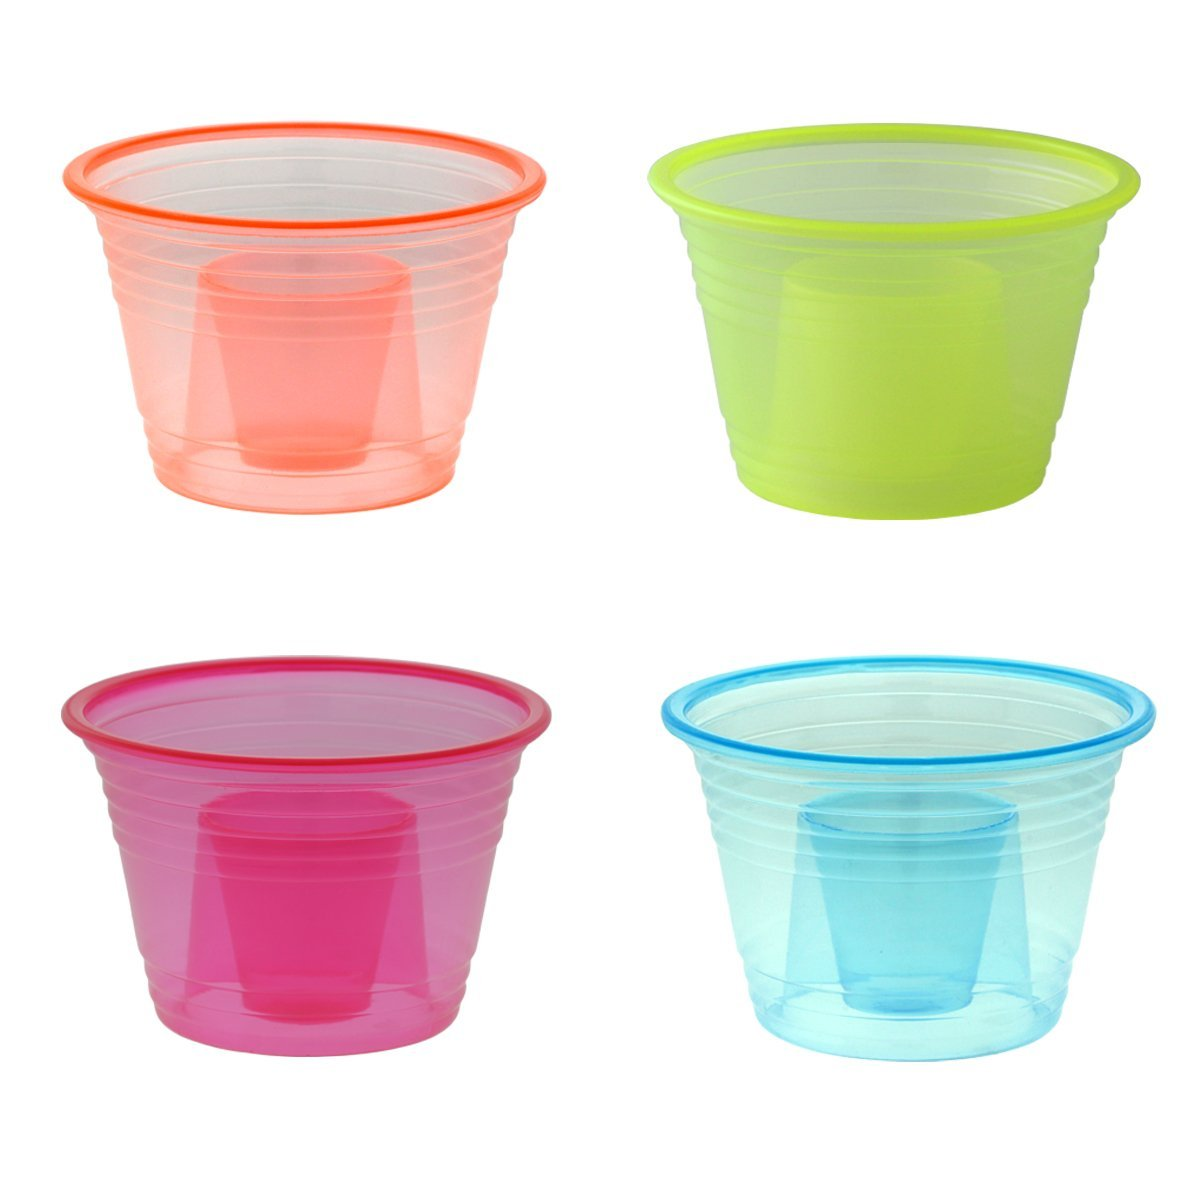 EaMaSy Party 1-2.75 oz.Blaster Bomb Shot Cups/ Power Bombs Colorful